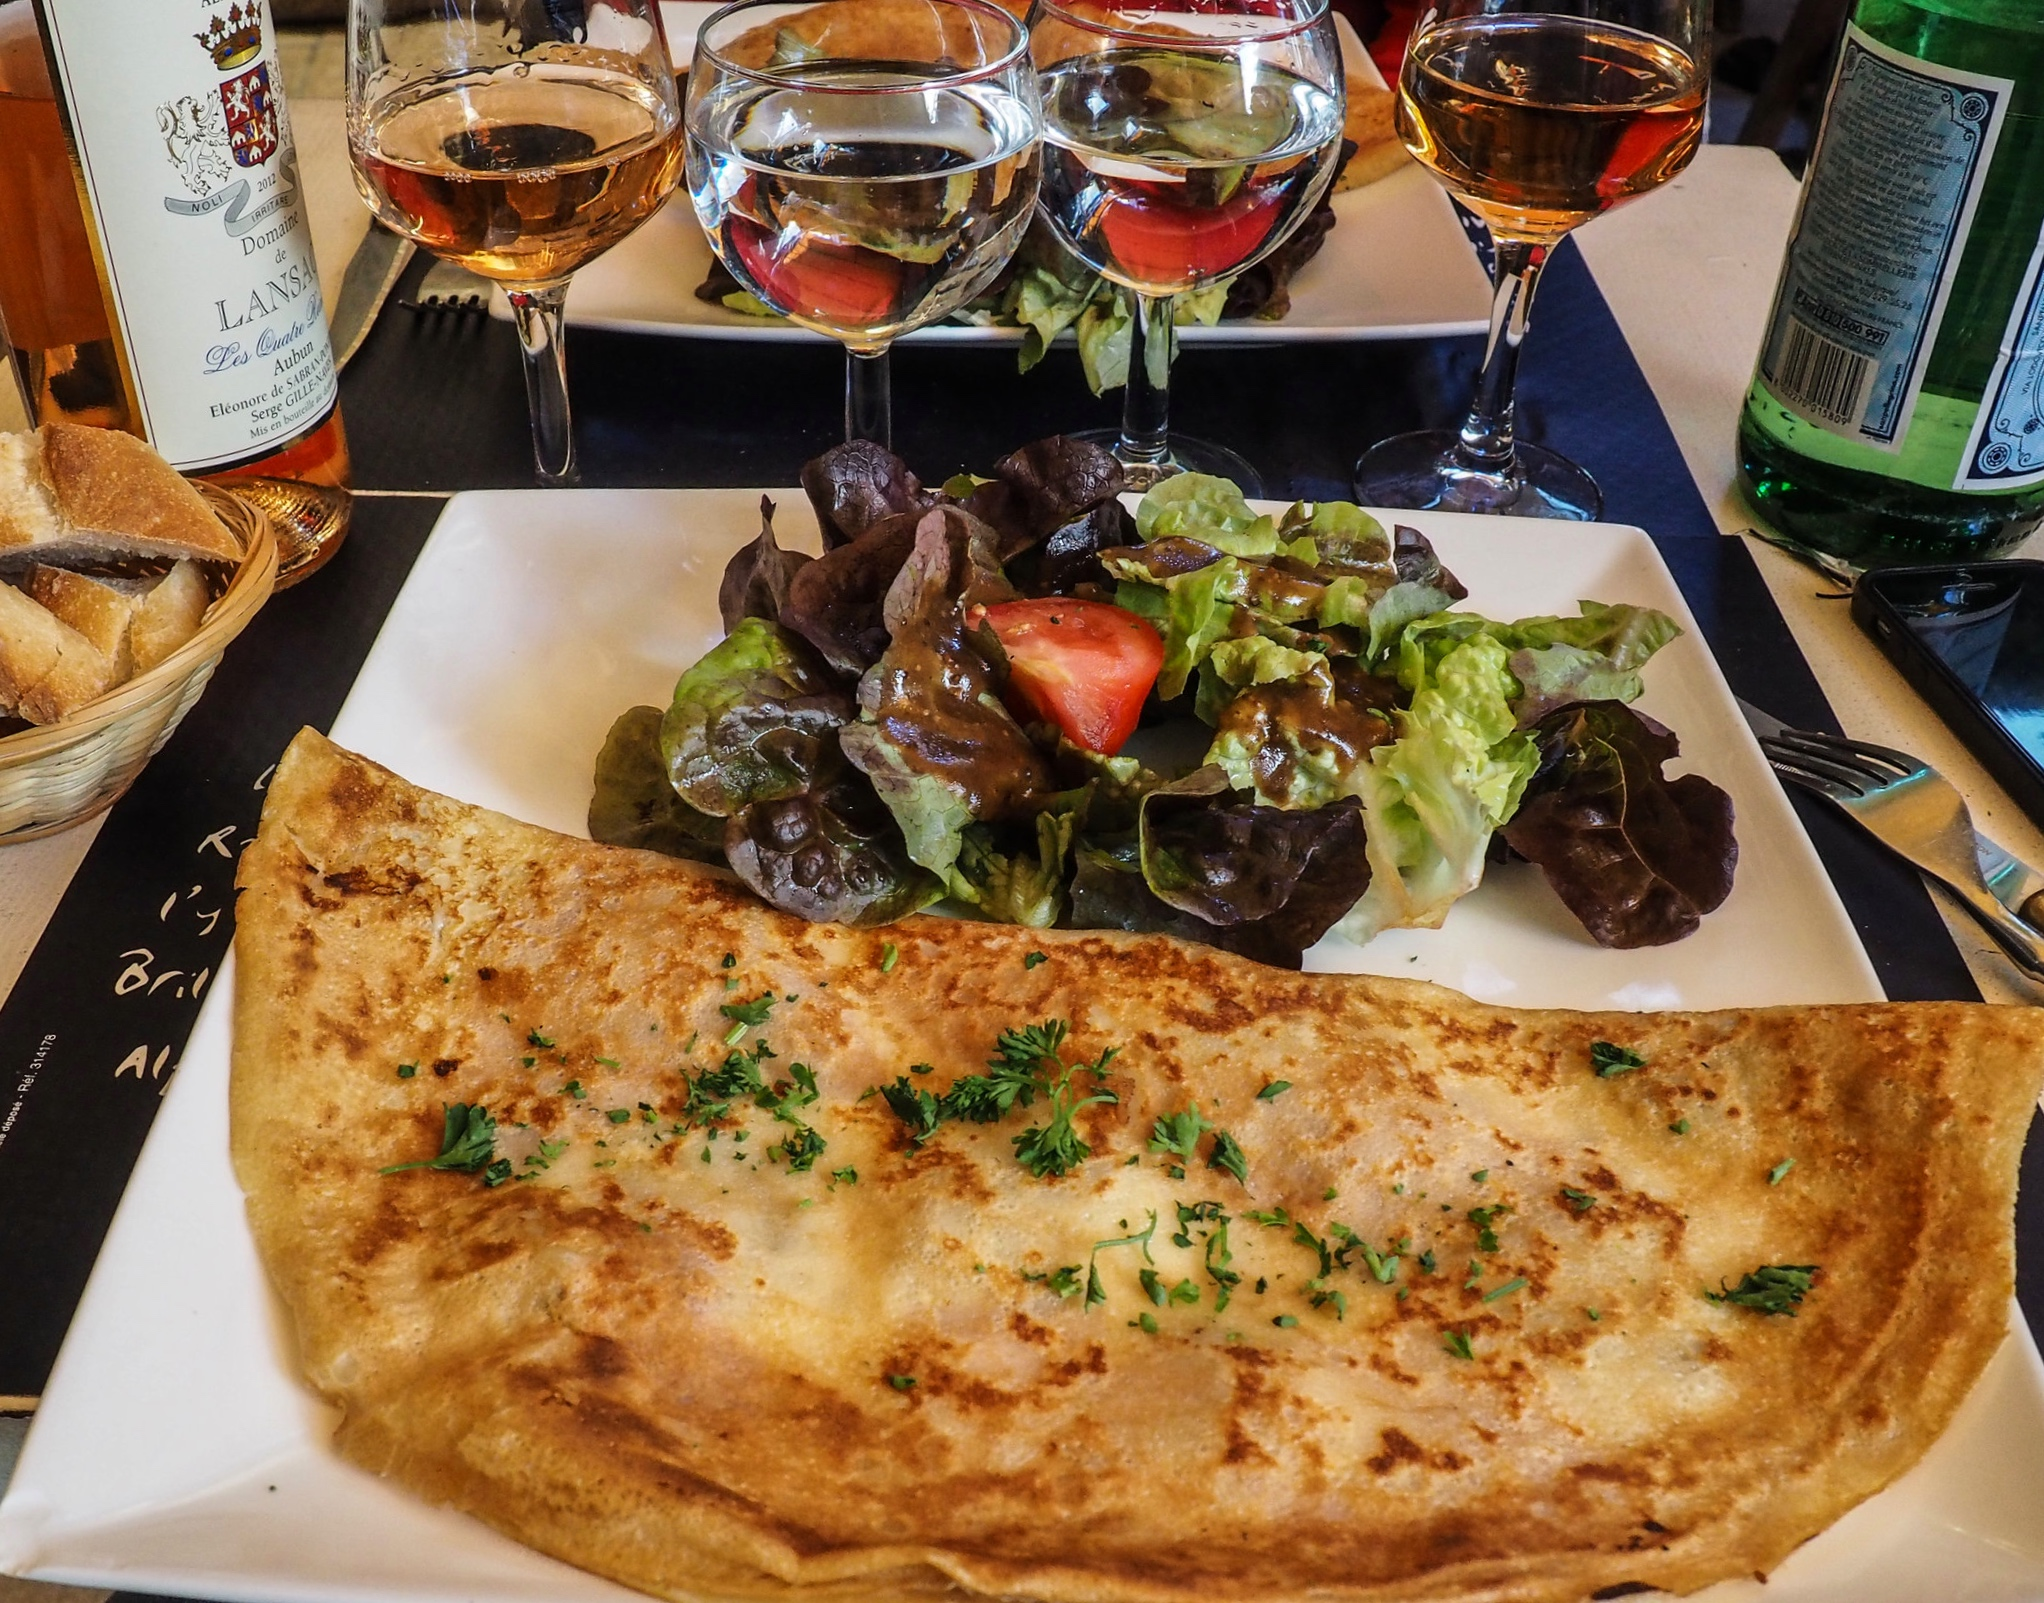 French Omelette, Le-Baux-de-Provence, France